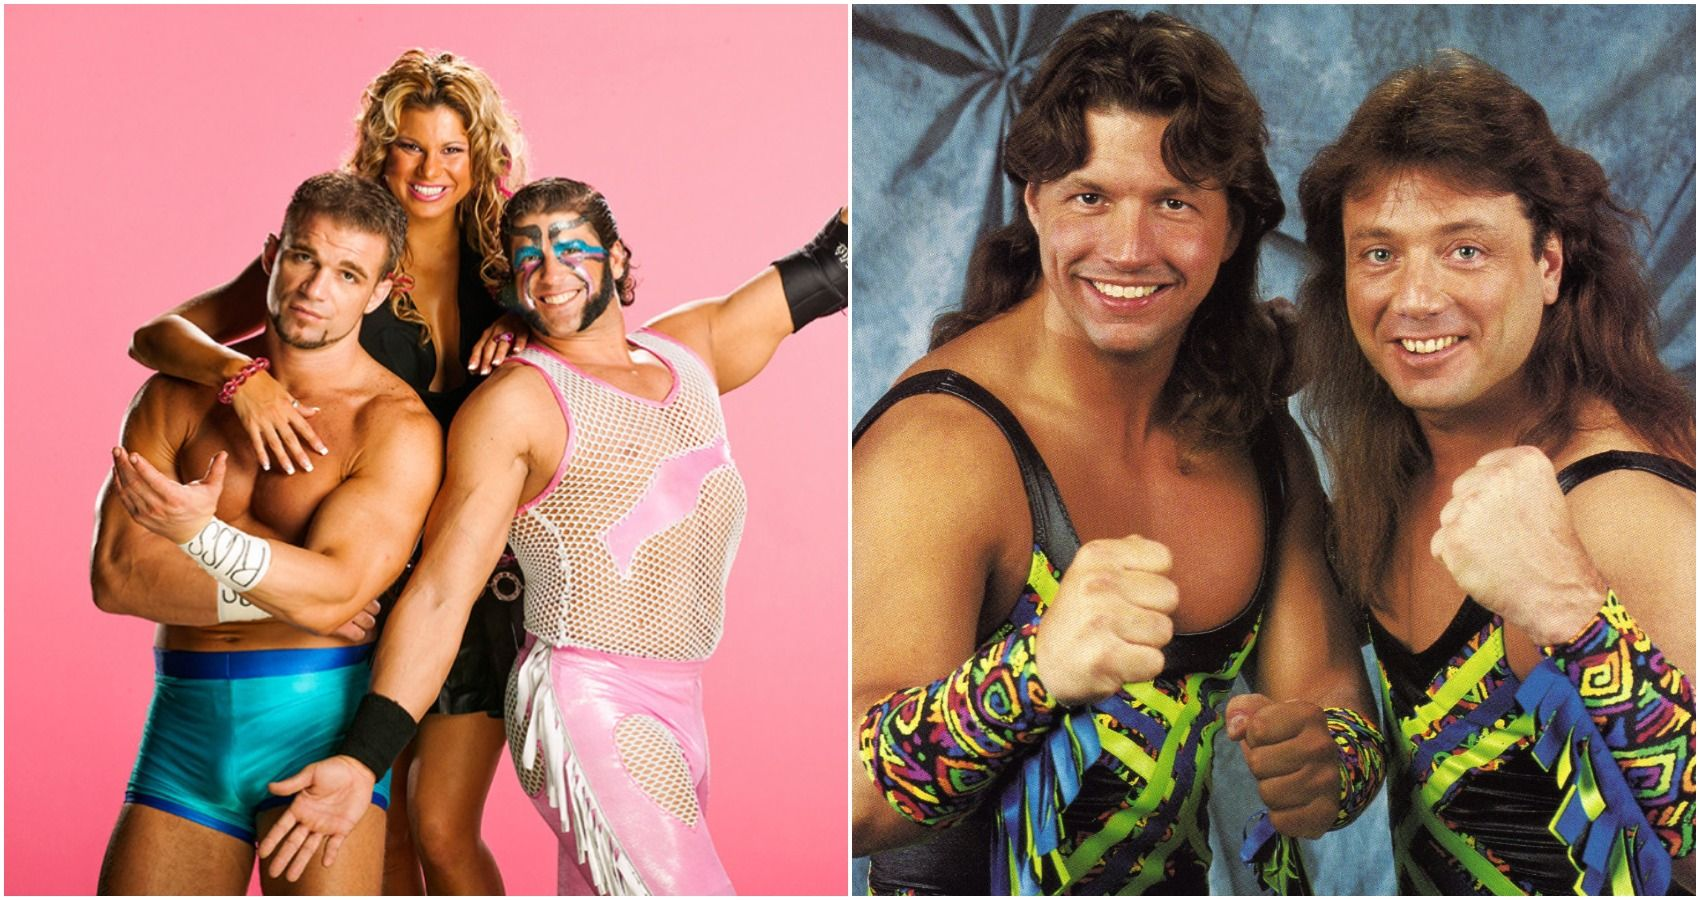 10 Times A Wrestler Left One Tag Team To Join A Worse One